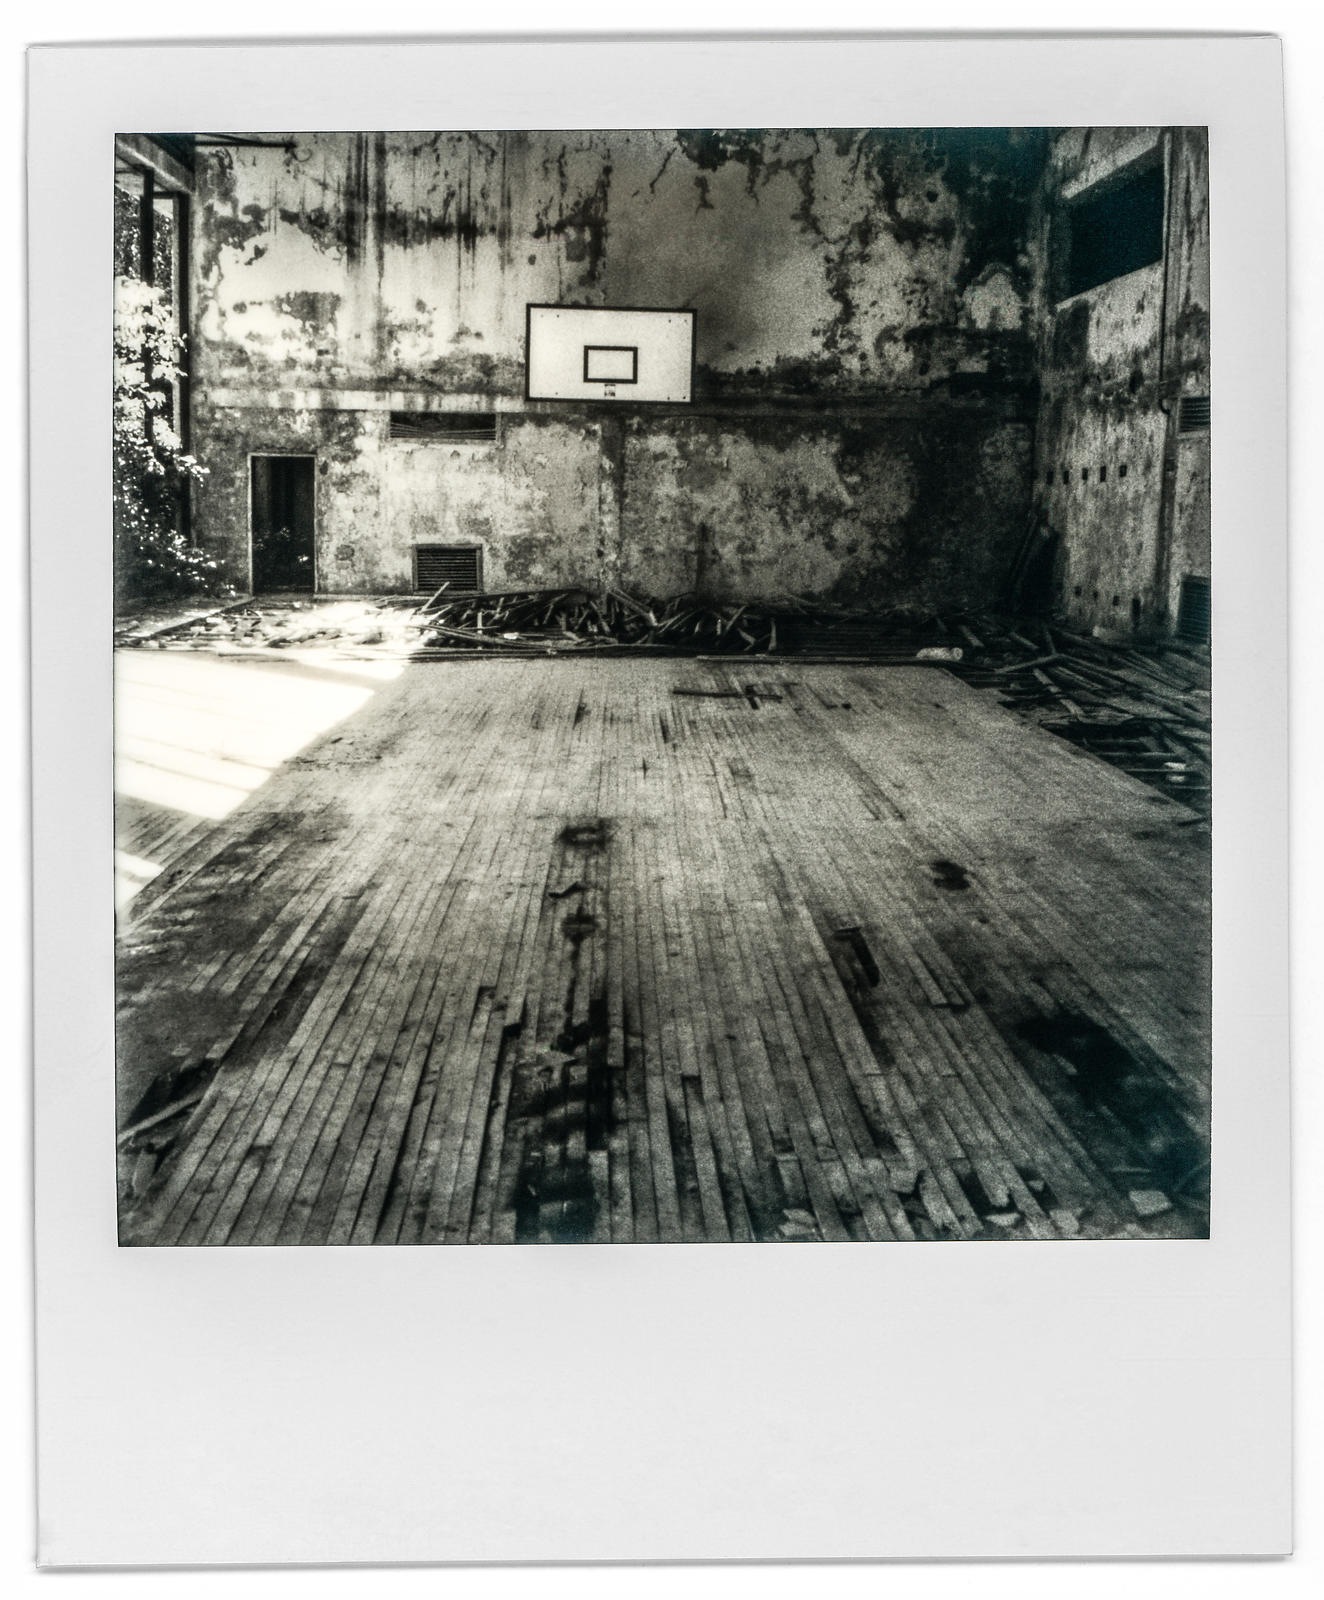 photo-polaroid-tchernobyl-chernobyl-15